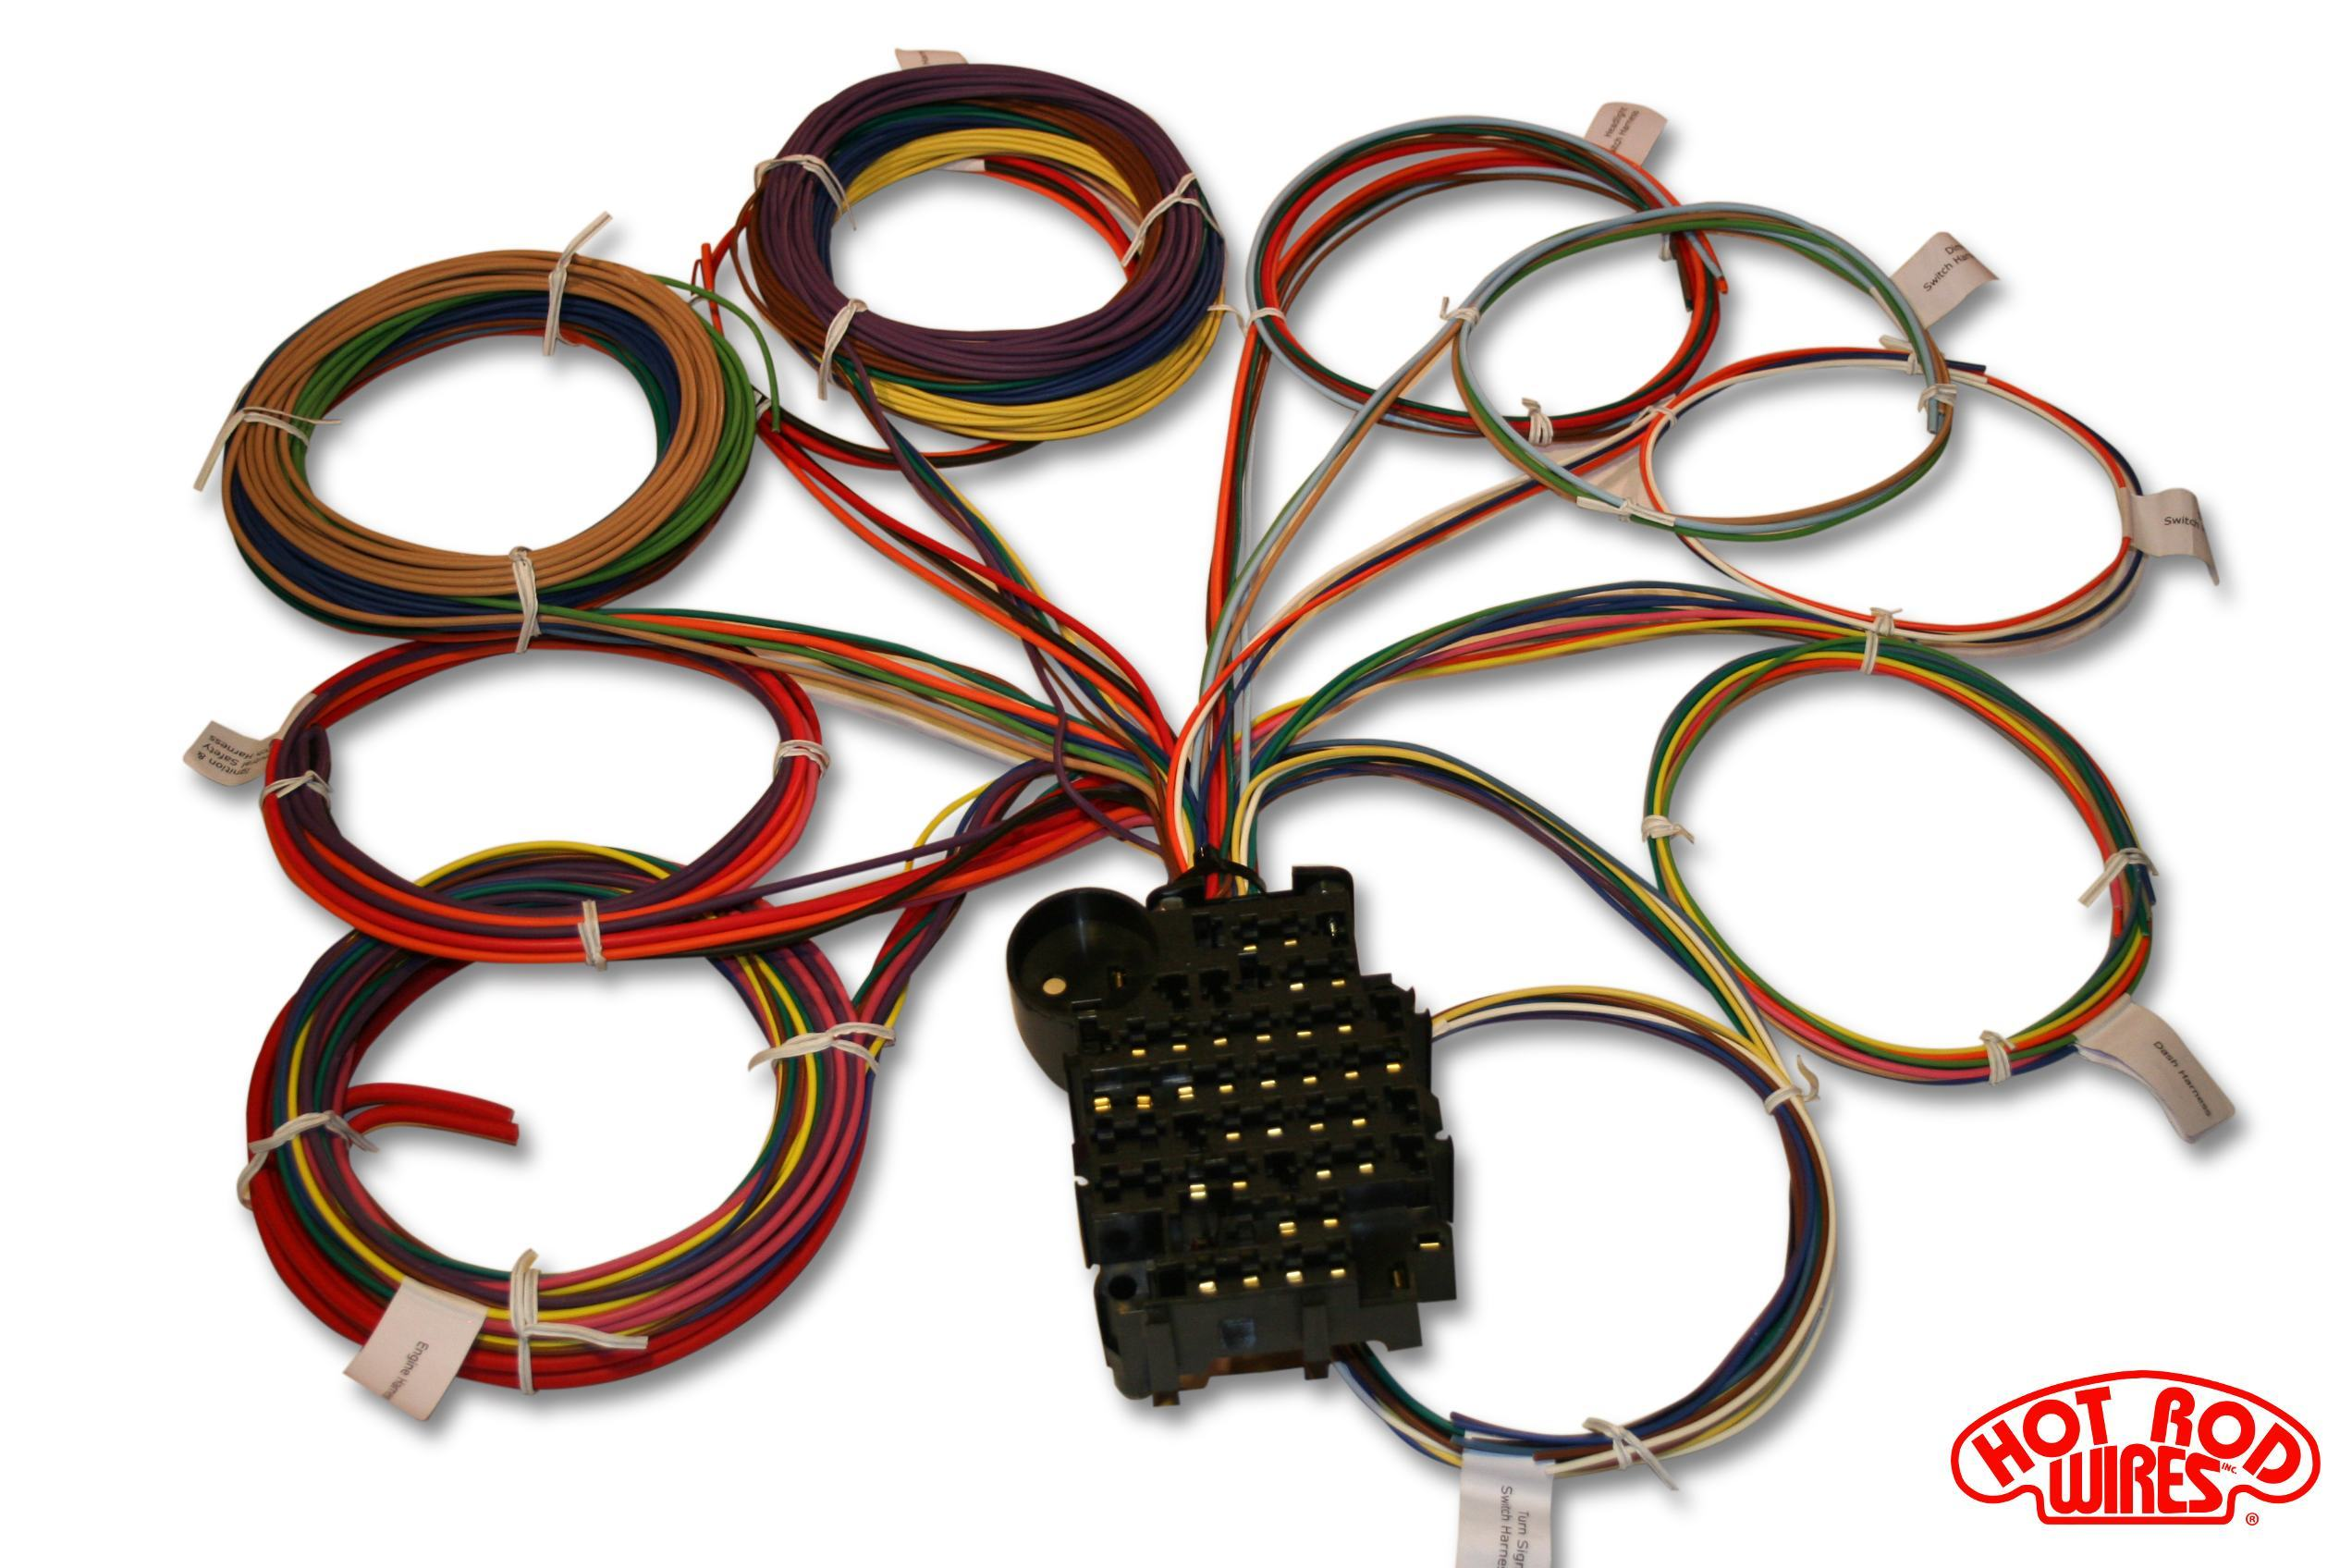 Universal 18 Circuit Auto Wiring Harness Best Street Rod More Information Below